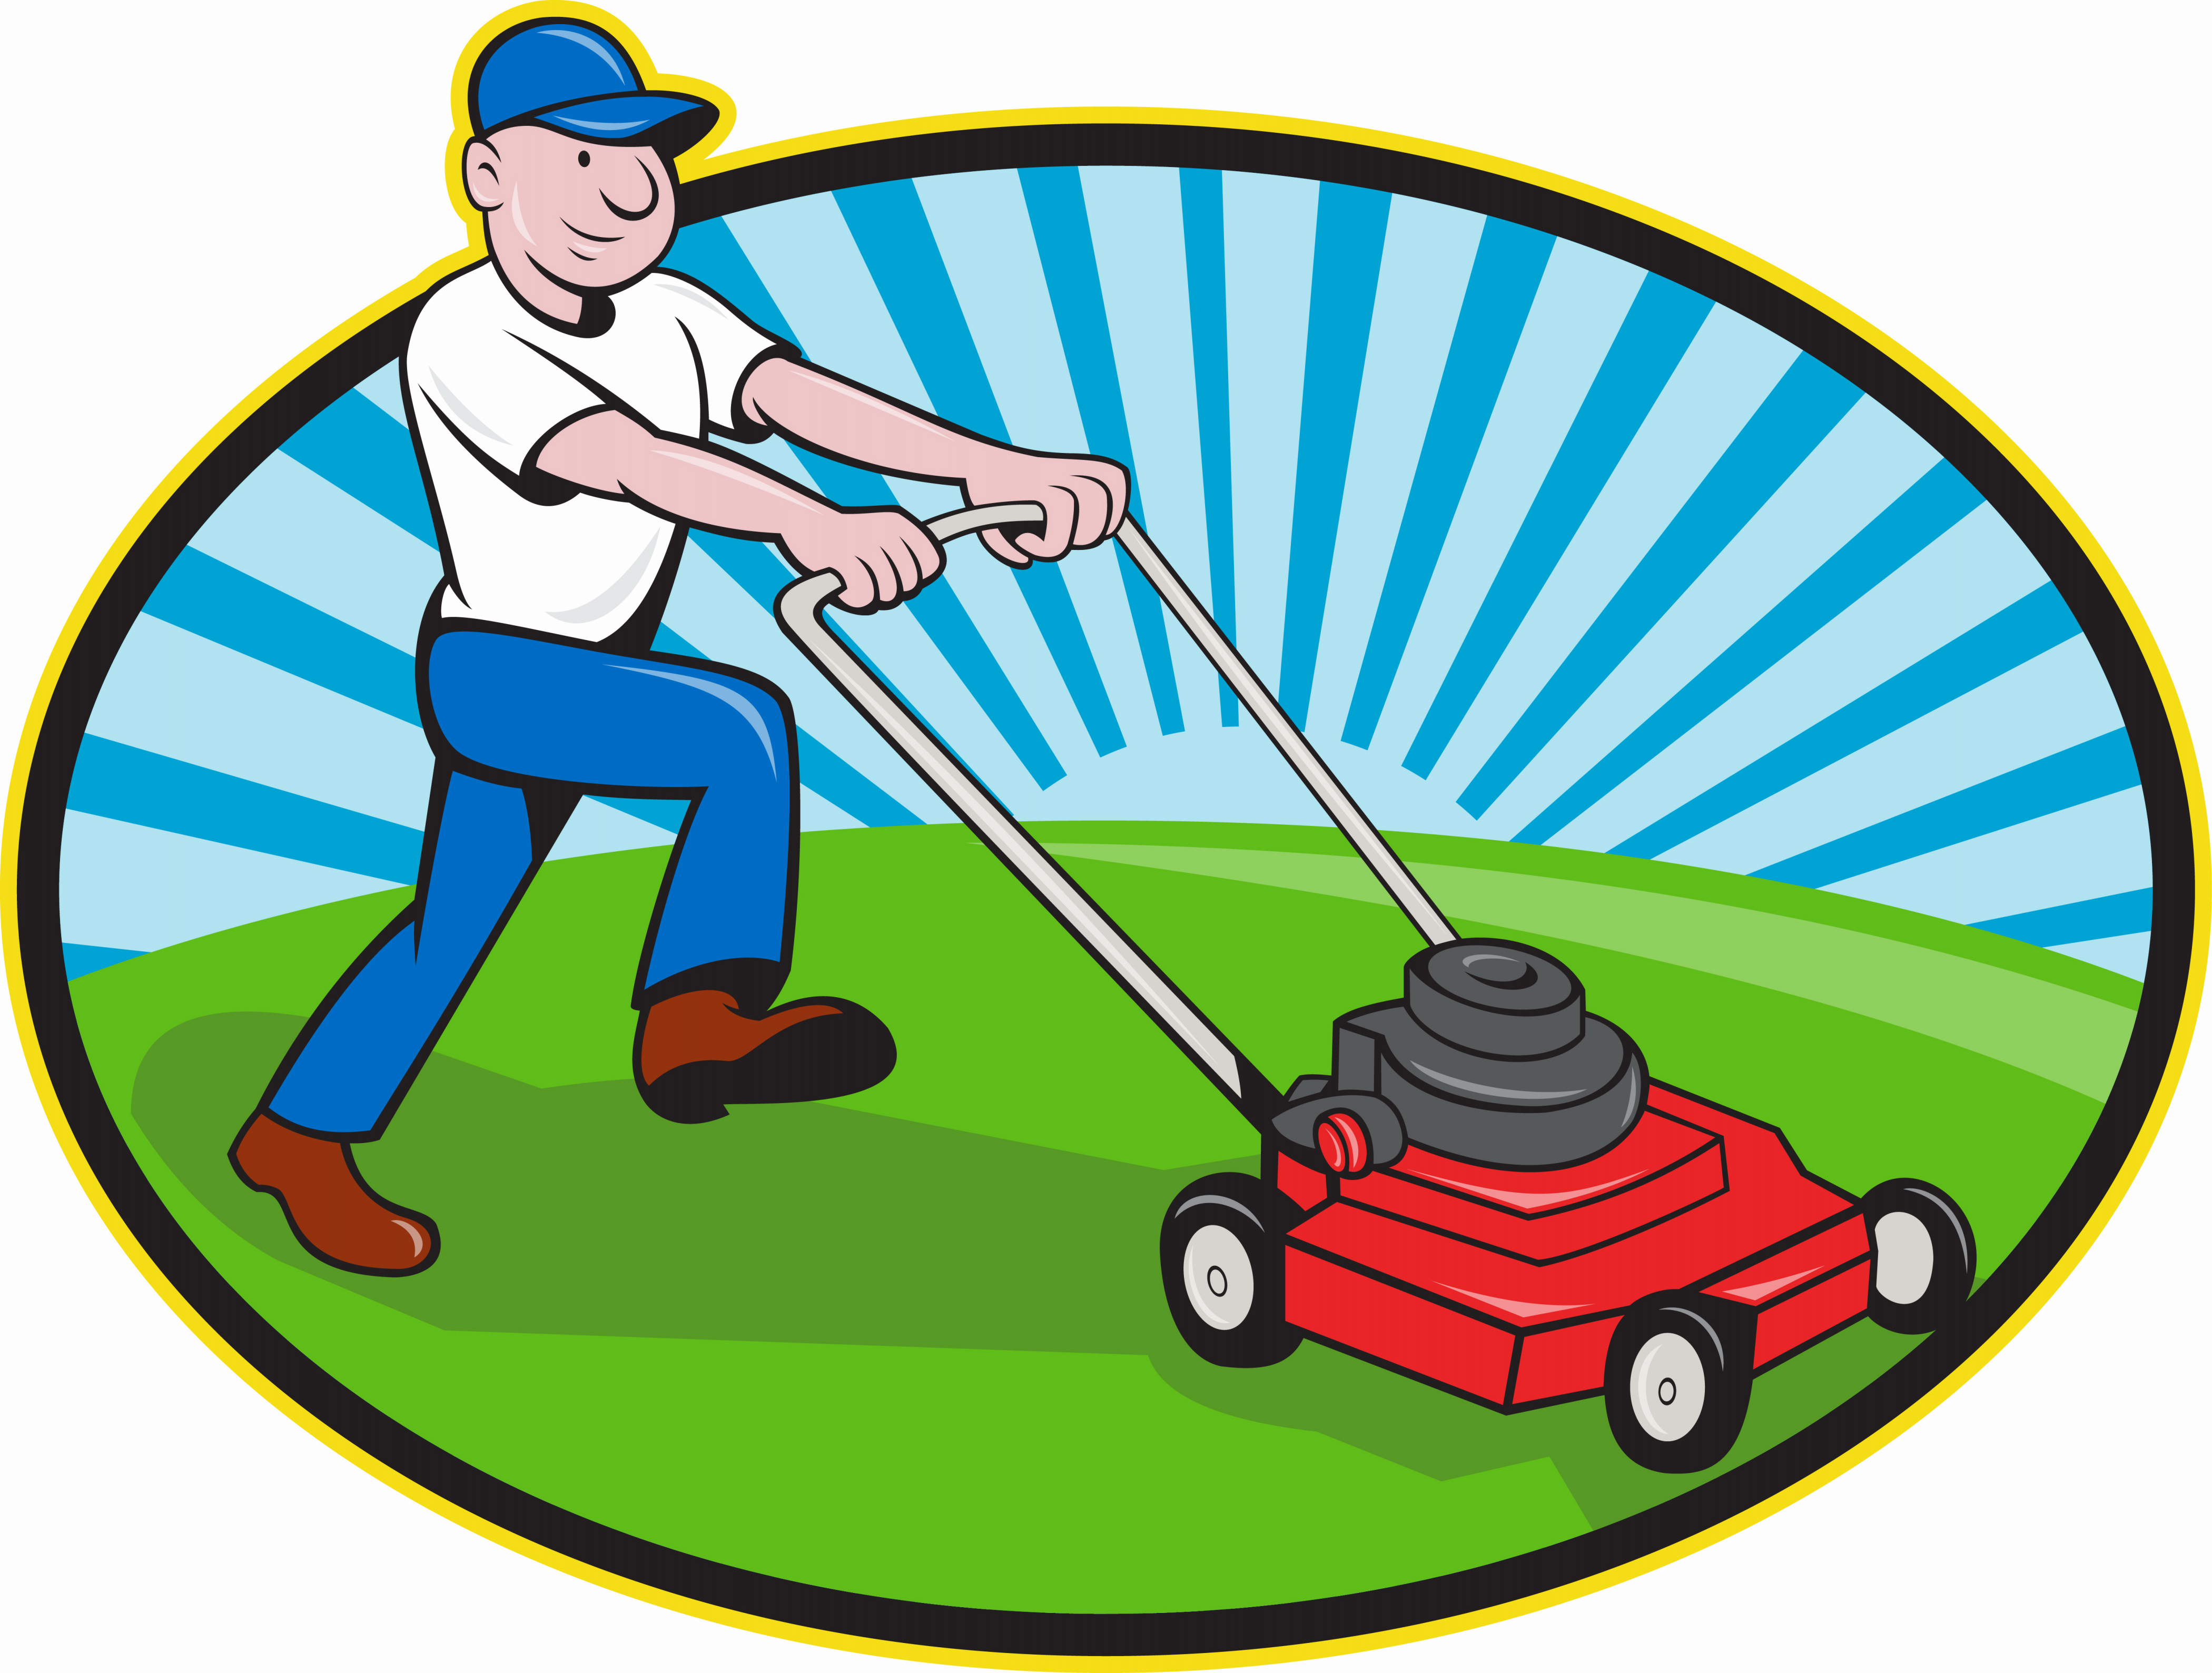 Clipart of Lawn Mower Man free image.